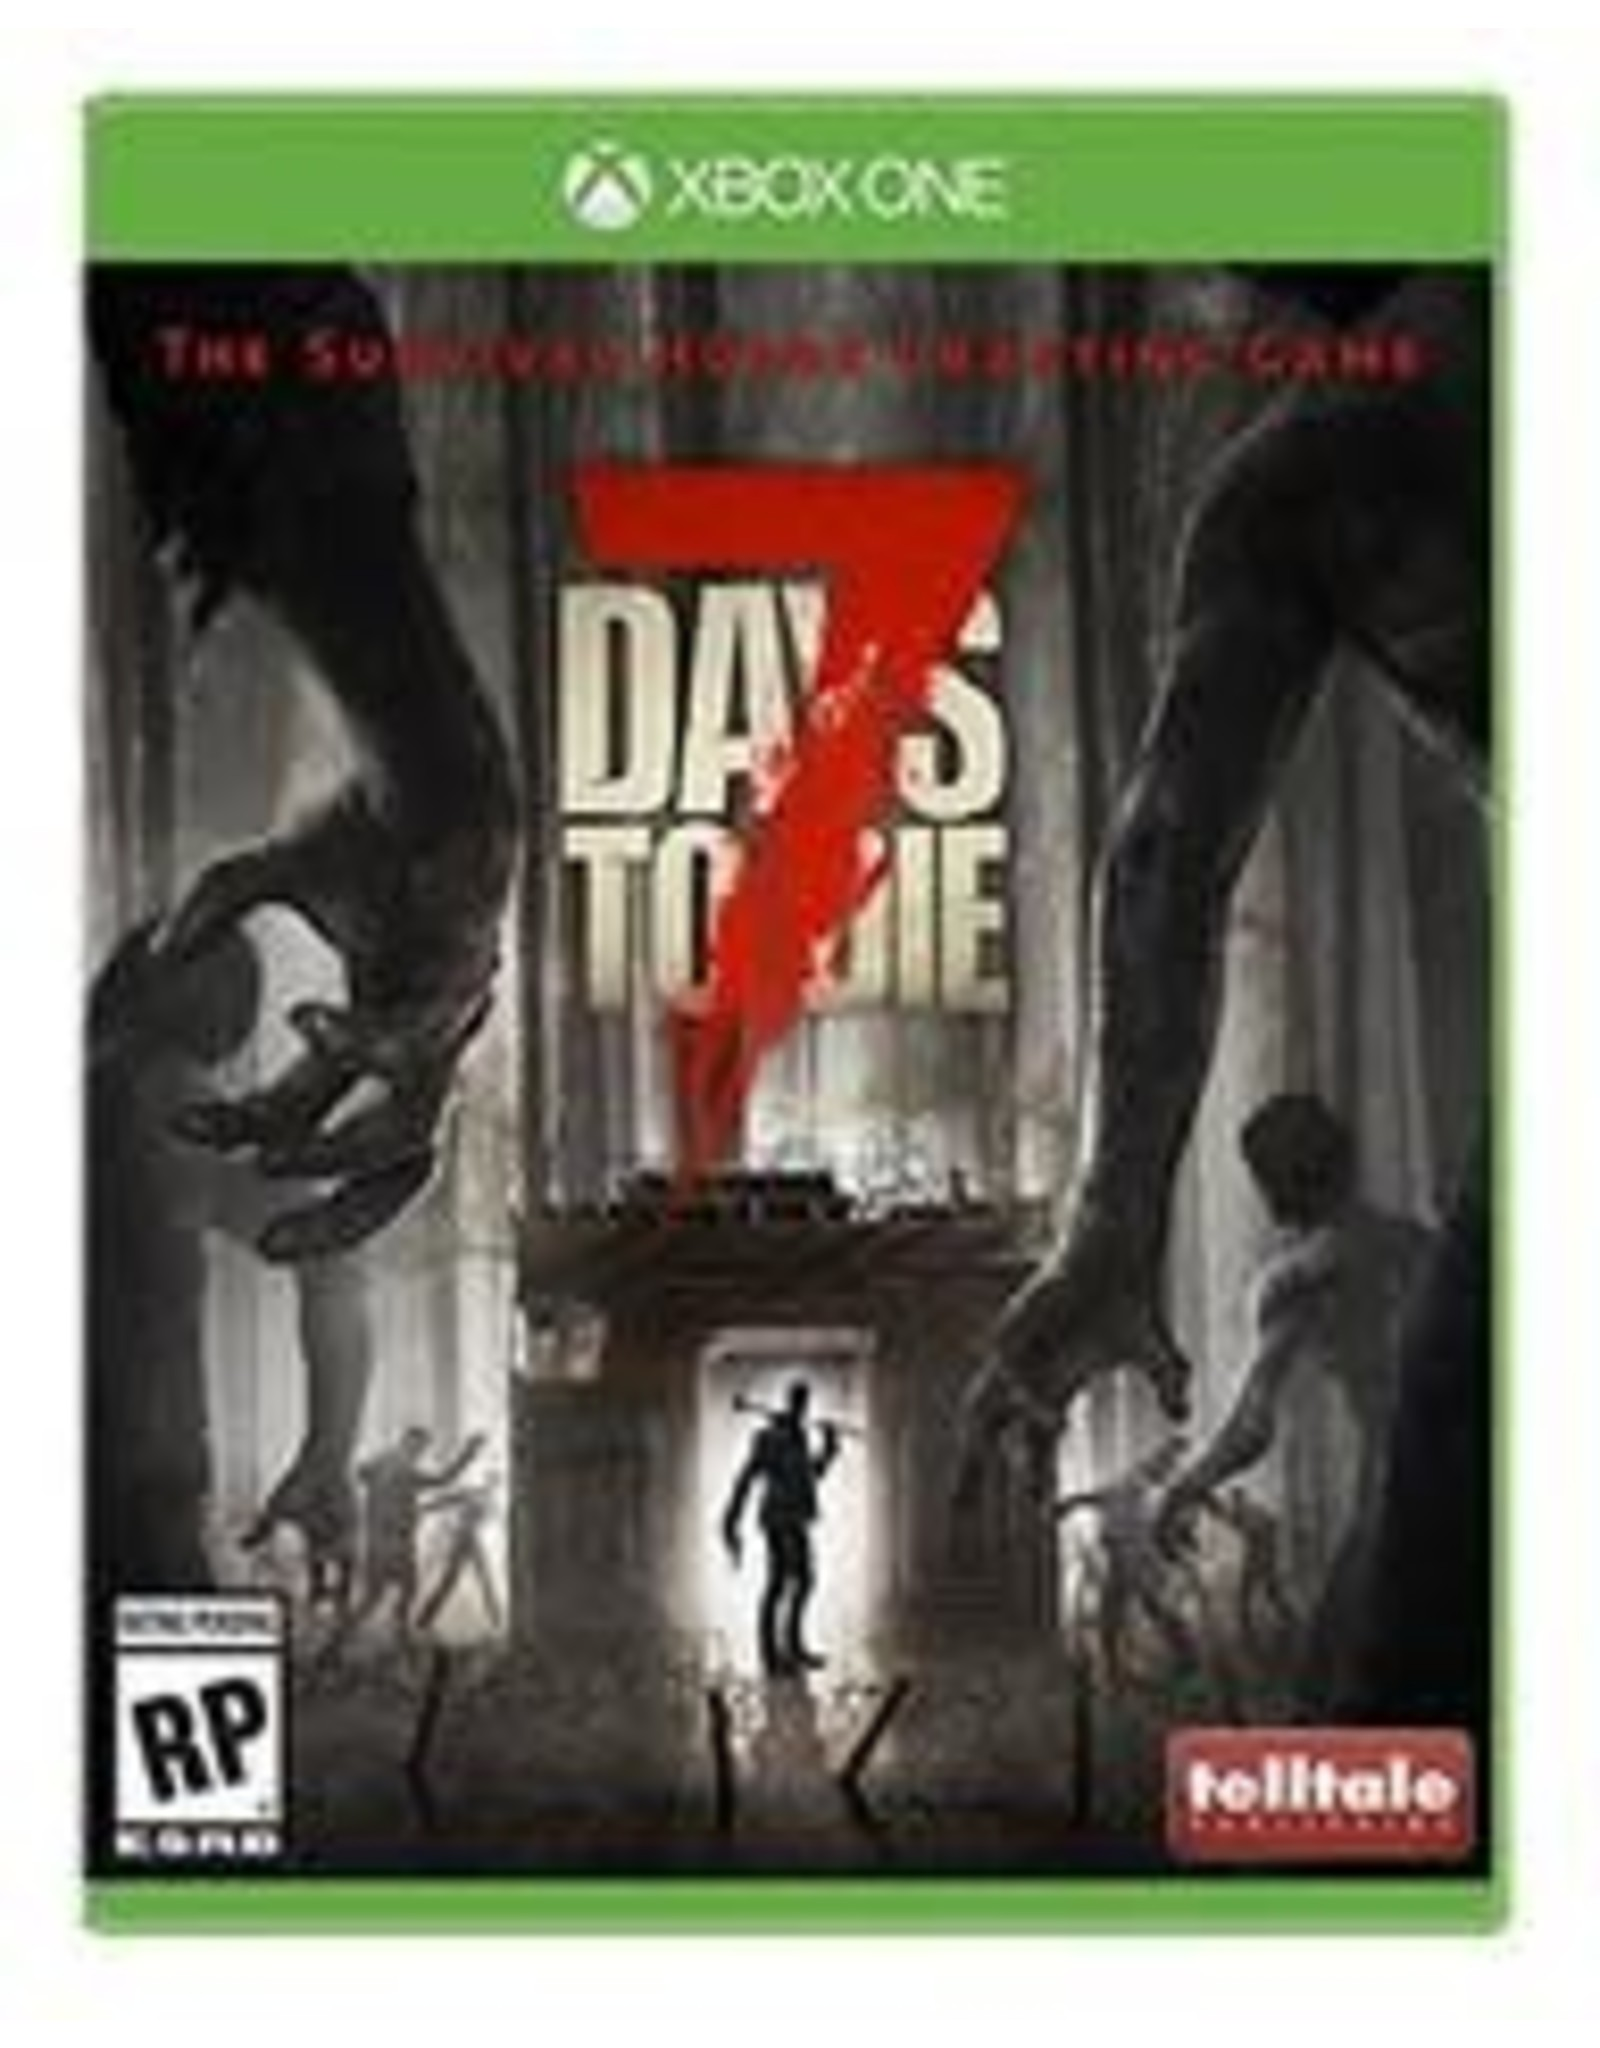 Xbox One 7 Days to Die (Used)